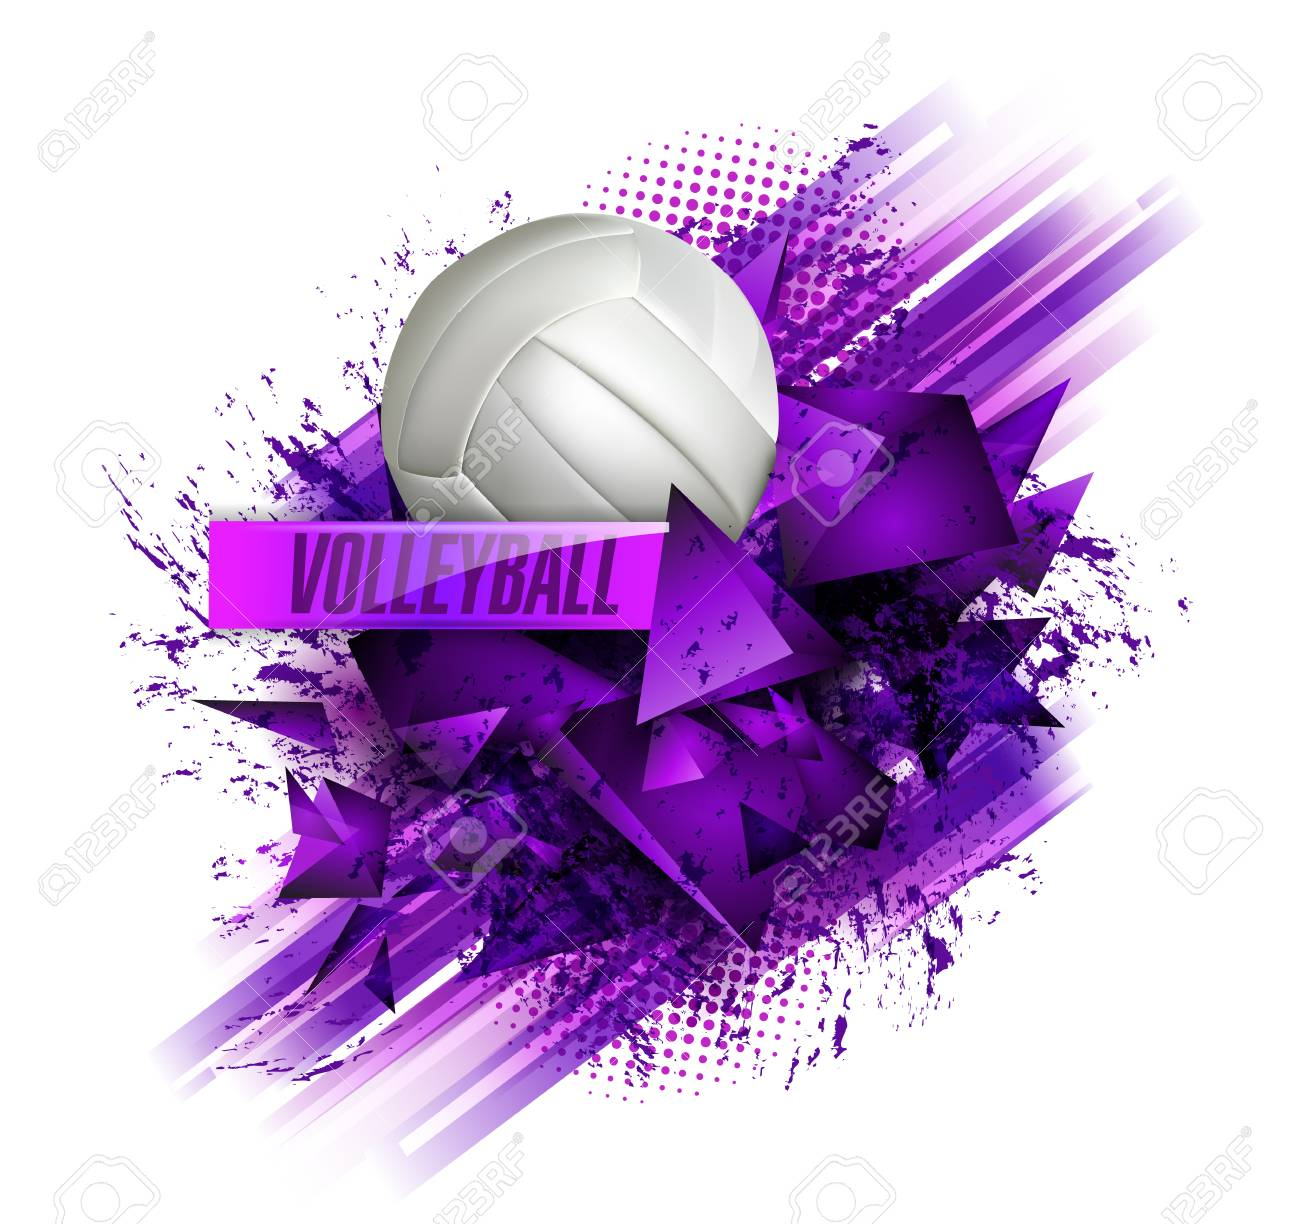 Volleyball Text On An Abstract Background Sports Royalty 1300x1224